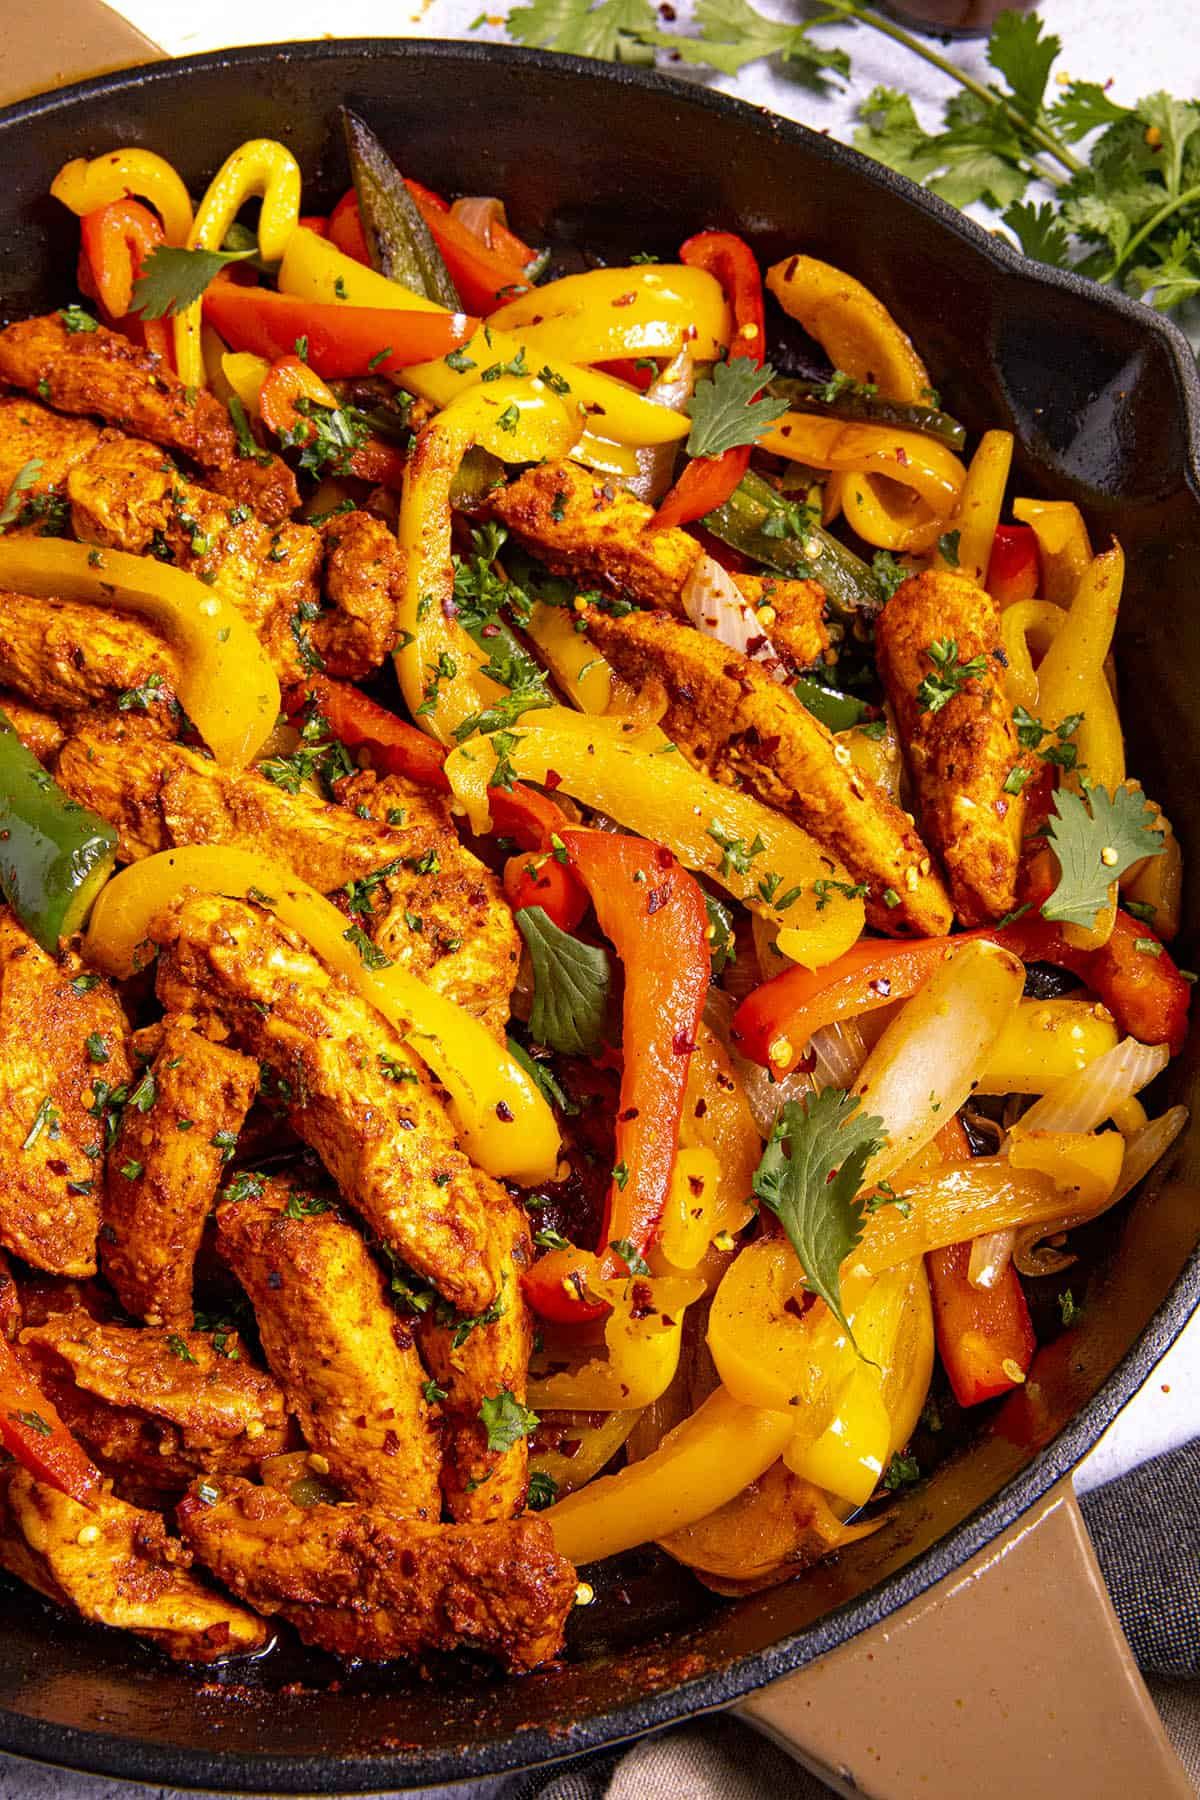 Delicious Chicken Fajitas in a hot pan with lots of garnish